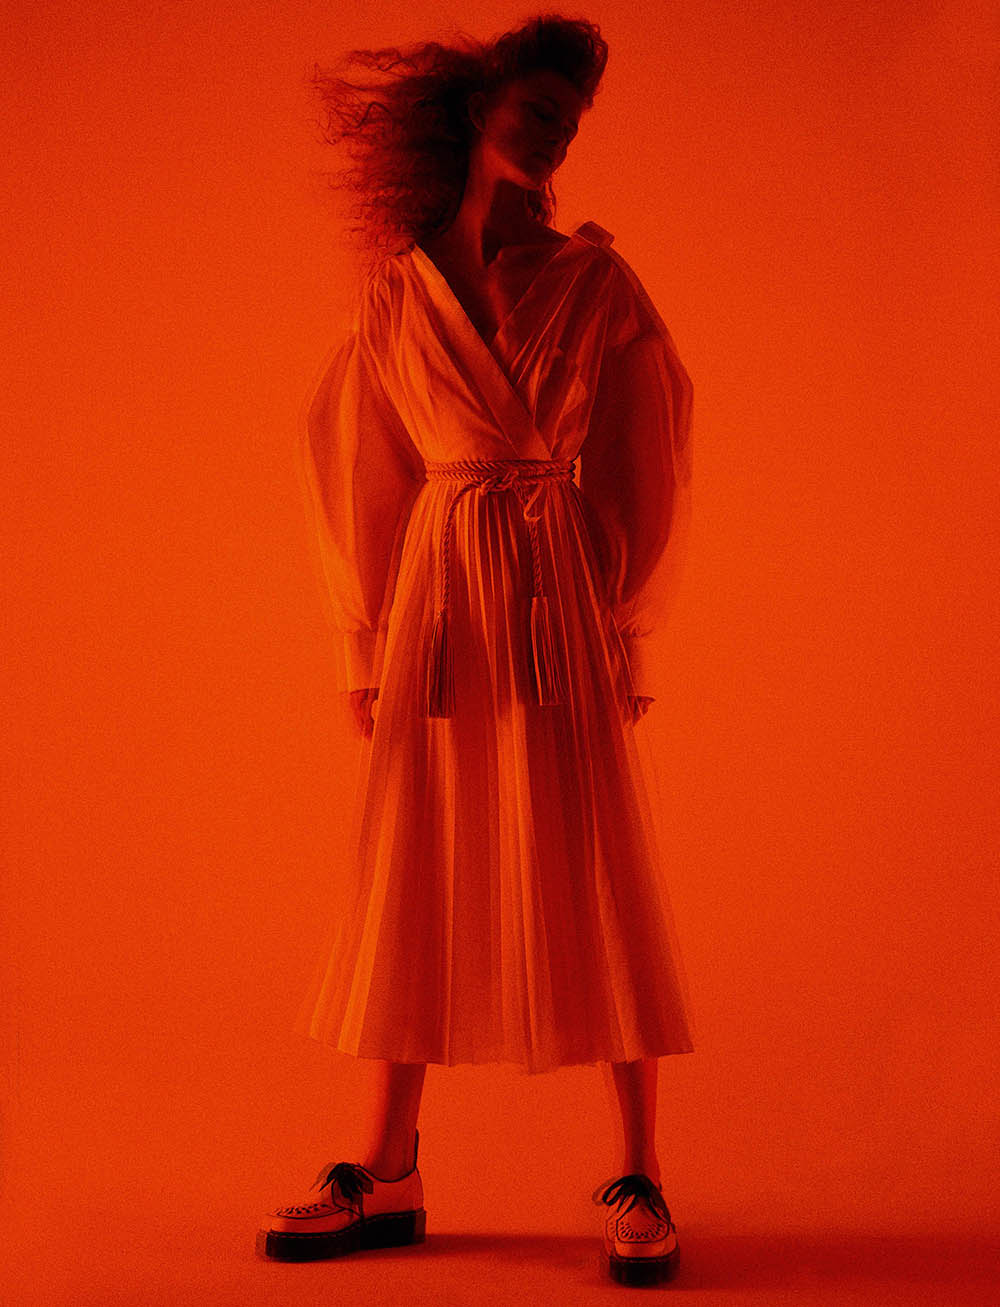 Rianne van Rompaey by Karim Sadli for W Magazine Volume 2 2020